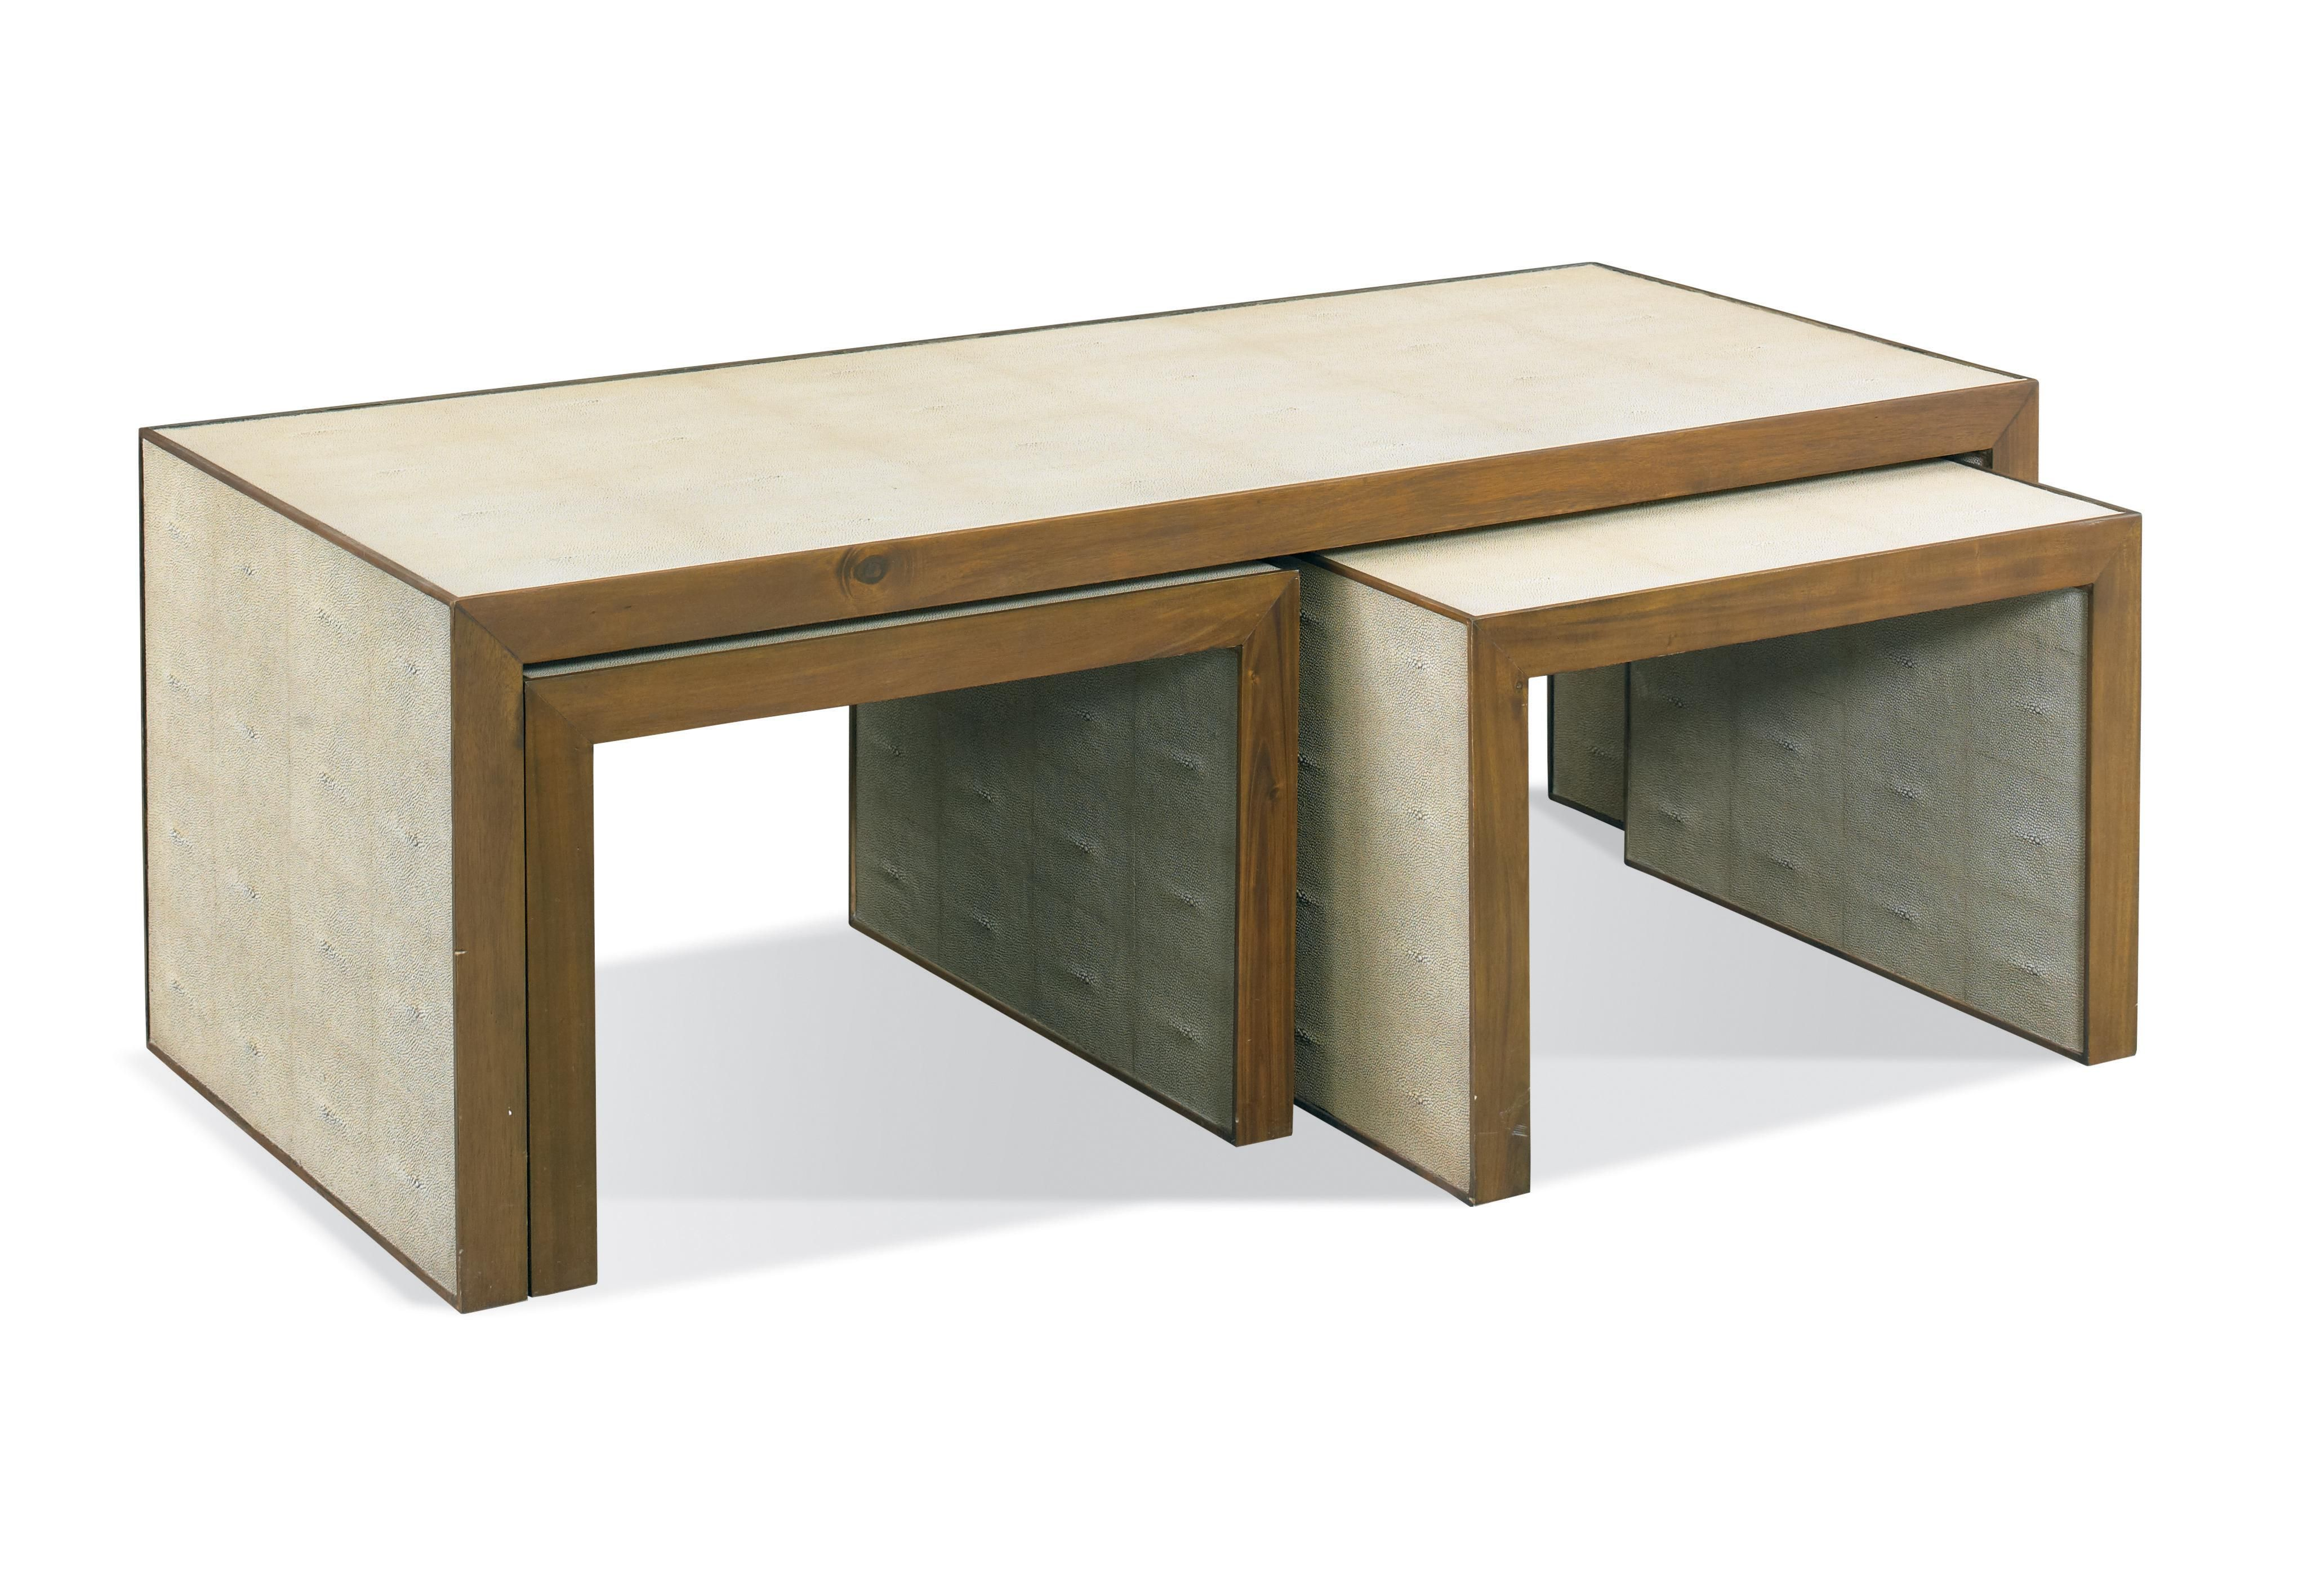 Large table w d h two small tables w d h belgian